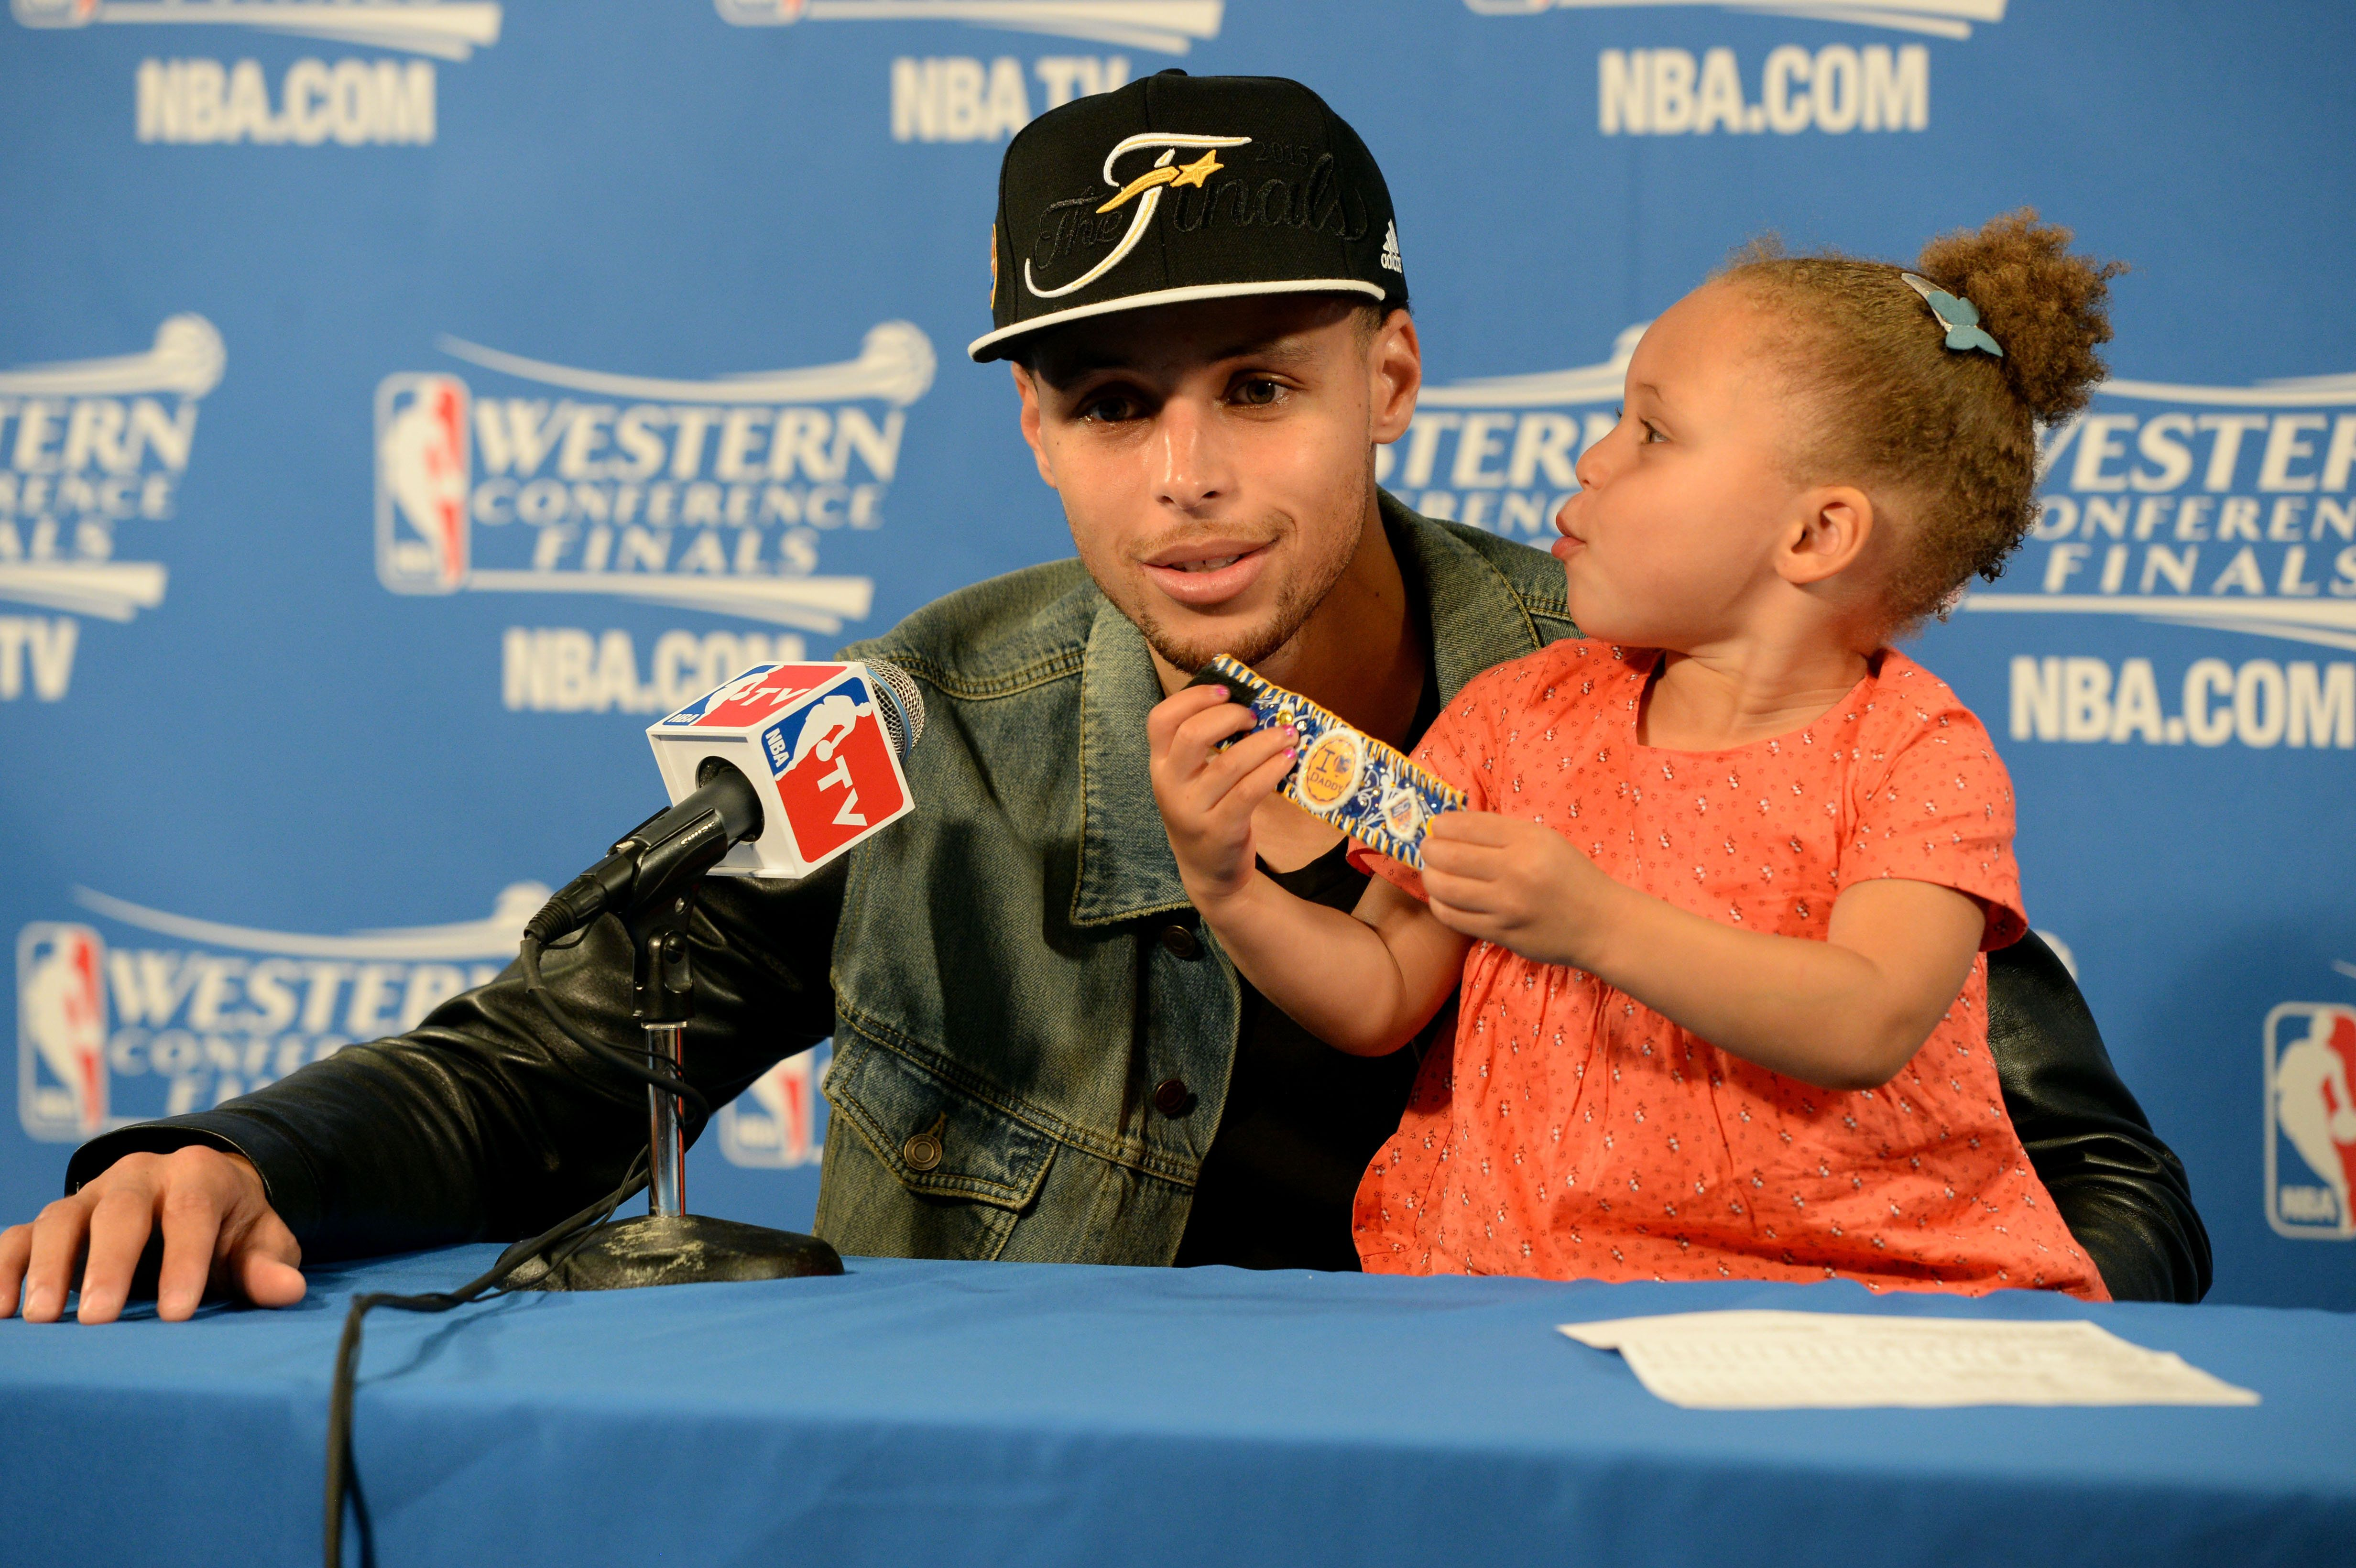 OAKLAND, CA - MAY 27: Stephen Curry #30 of the Golden State Warriors speaks to the media with daughter Riley Curry after a game against the Houston Rockets in Game Five of the Western Conference Finals during the 2015 NBA Playoffs on May 27, 2015 at ORACLE Arena in Oakland, California. NOTE TO USER: User expressly acknowledges and agrees that, by downloading and or using this Photograph, user is consenting to the terms and conditions of the Getty Images License Agreement. Mandatory Copyright Notice: Copyright 2015 NBAE (Photo by Andrew D. Bernstein/NBAE via Getty Images)